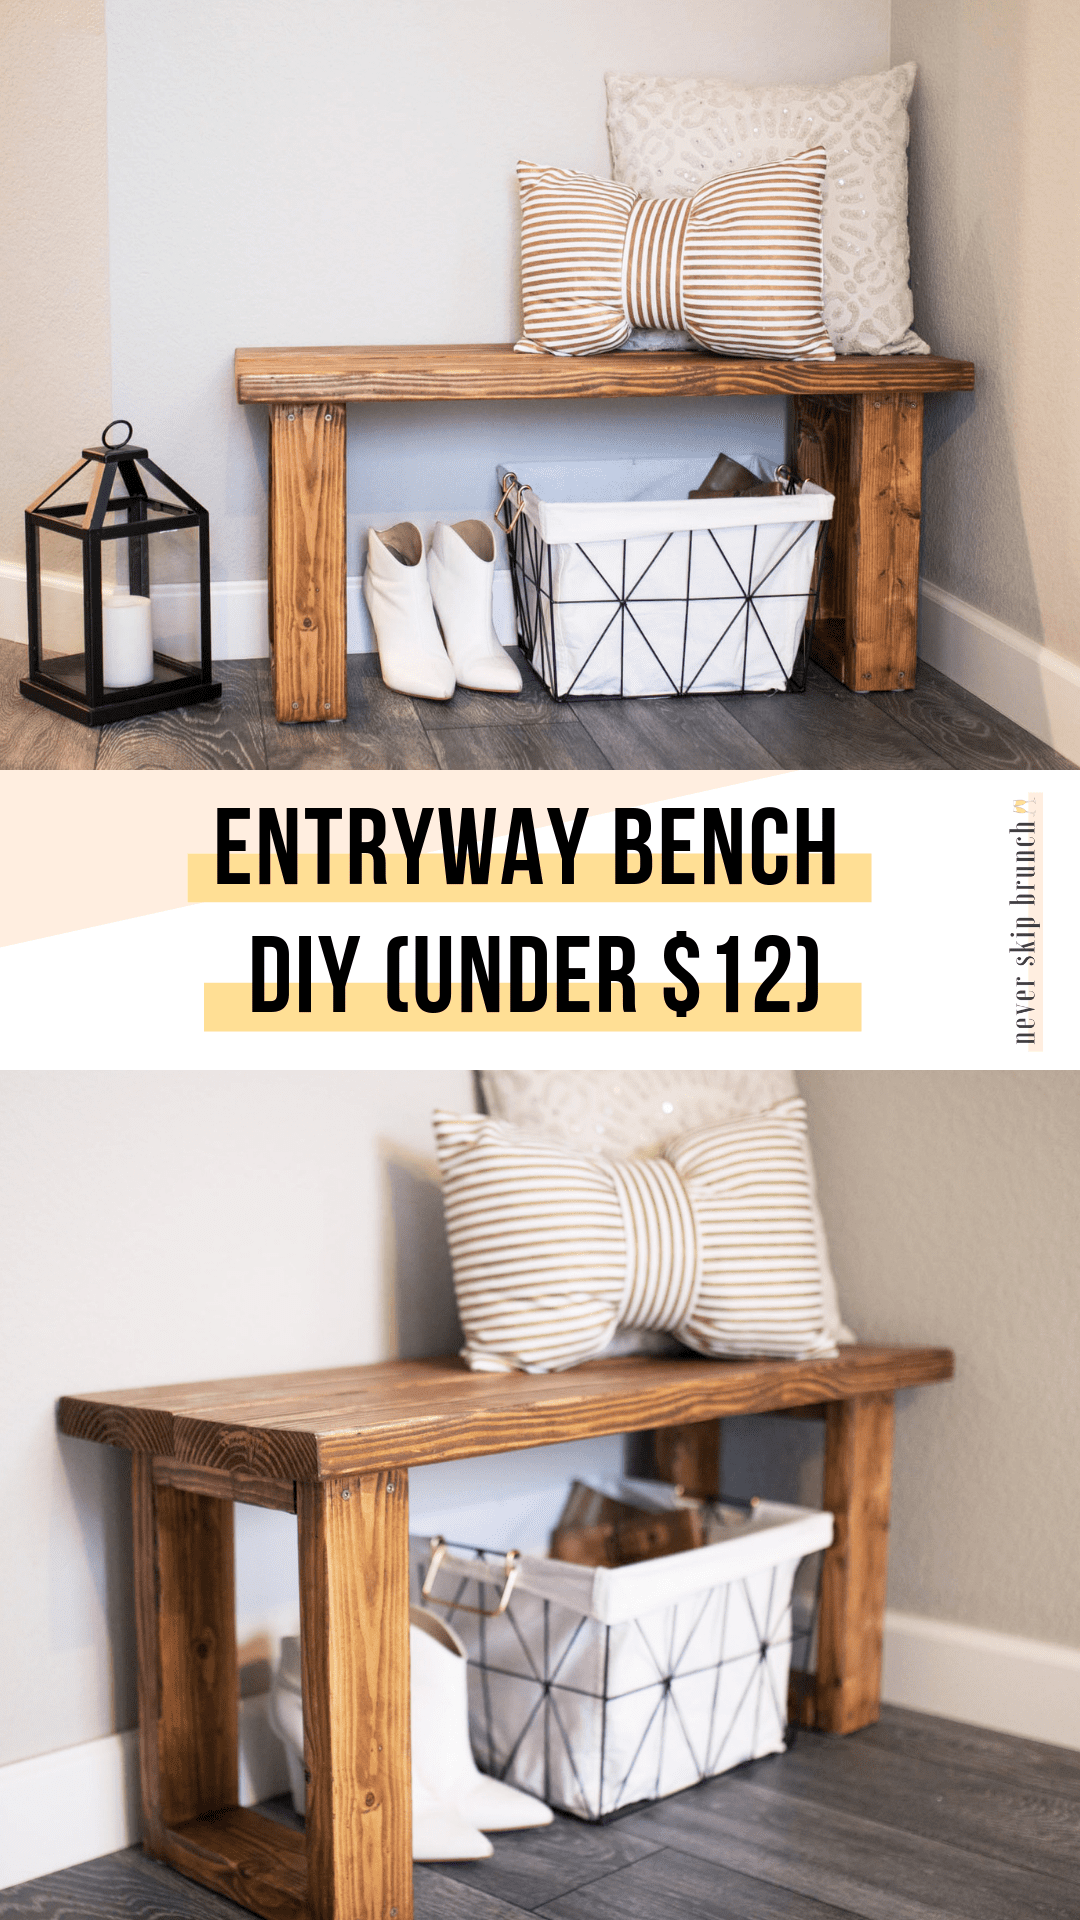 entryway bench diy small | entryway bench decor | entryway bench ideas | entryway ideas | entryway decor | DIY Bench DIY Furniture | never skip brunch by cara newhart #decor #DIY